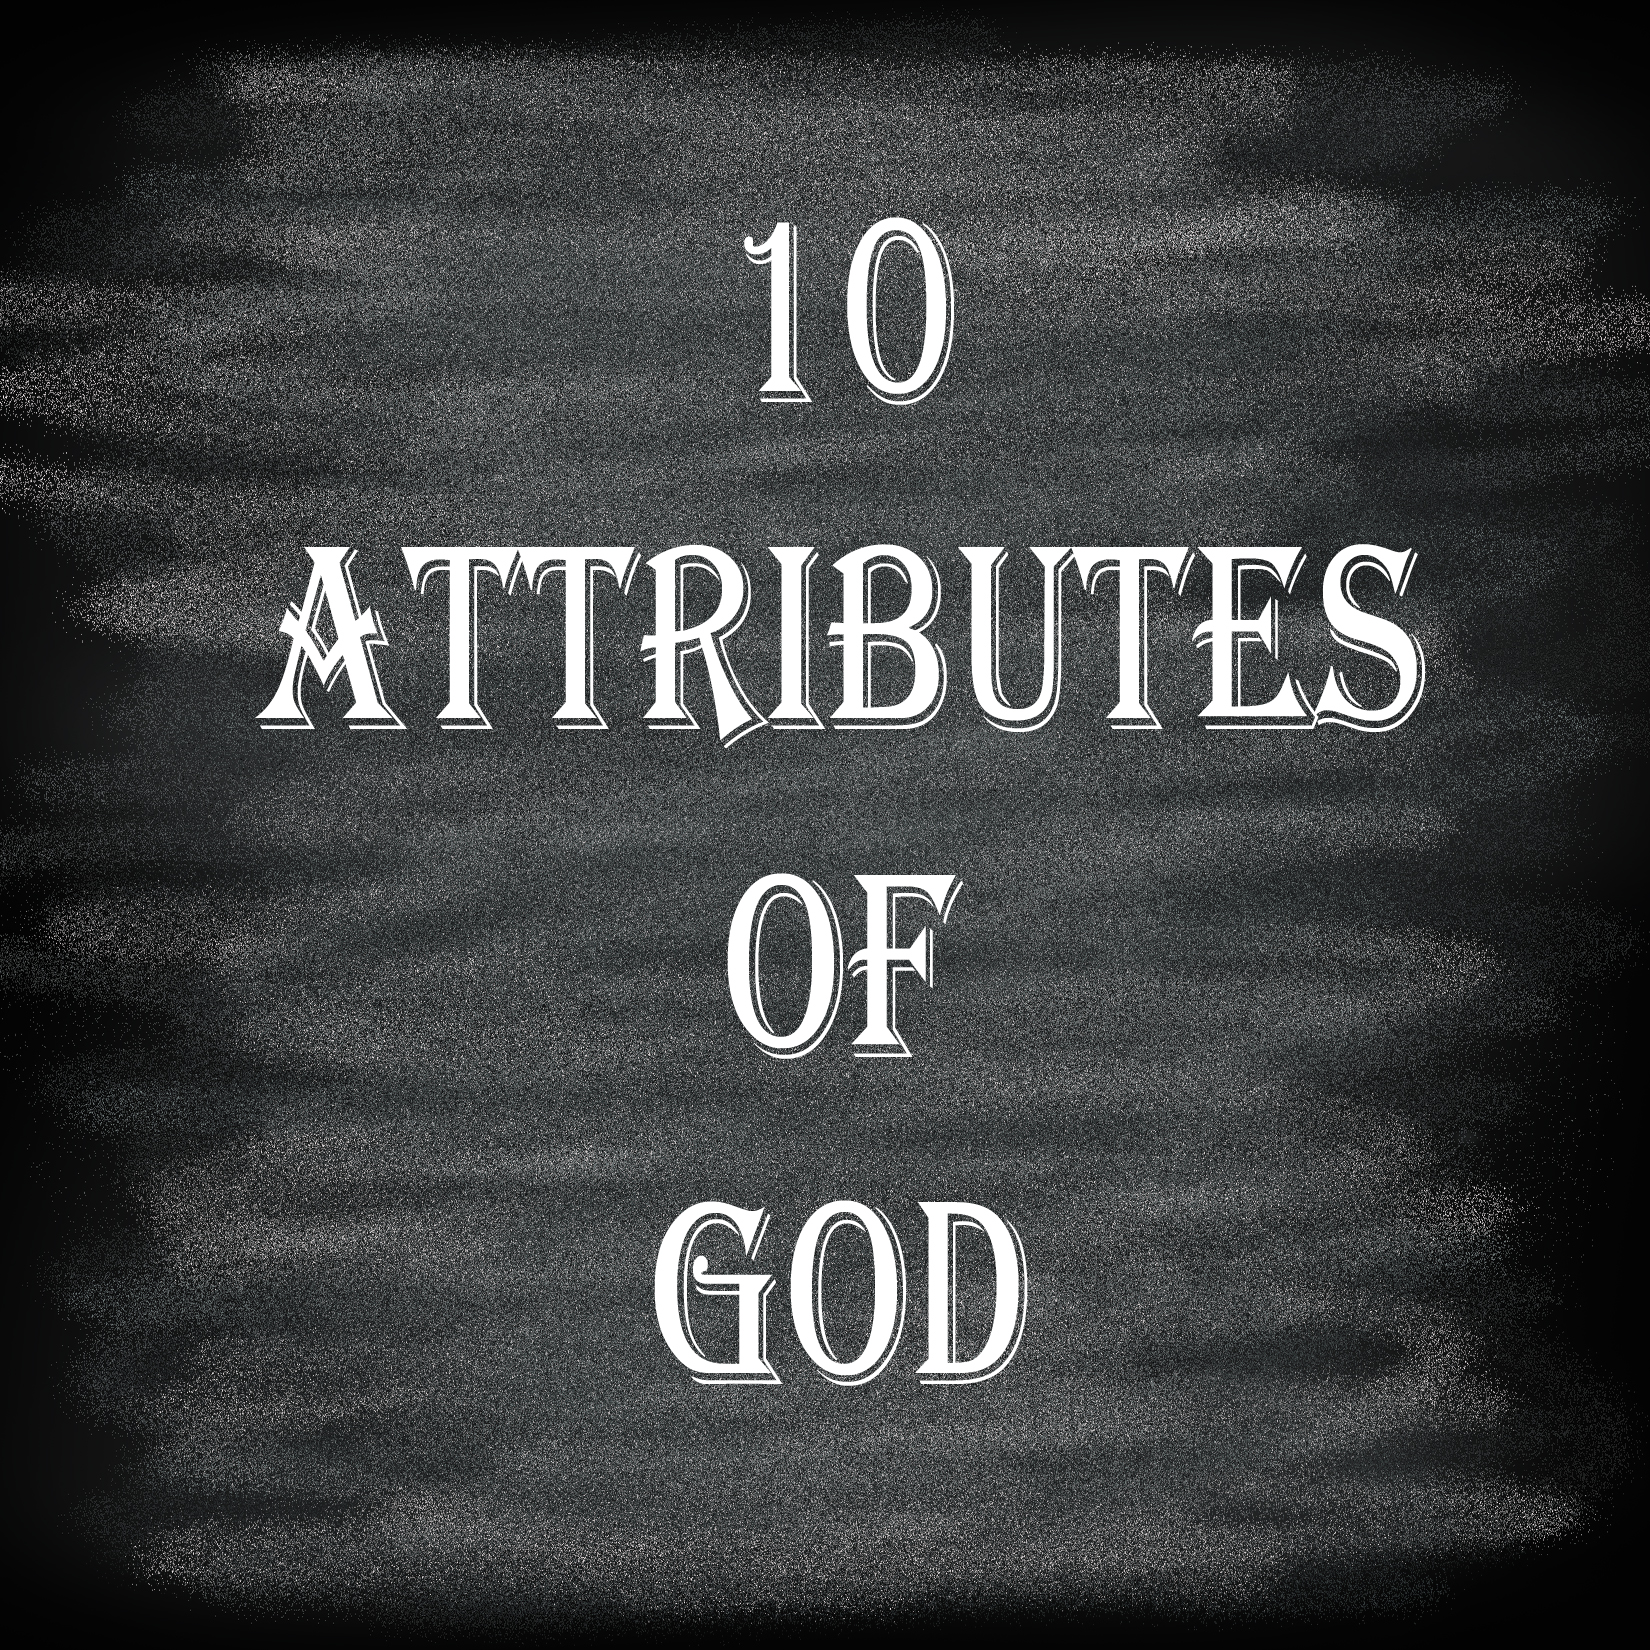 photograph regarding Printable Attributes of God named 10 Characteristics of God Prayer Within just Just about every Metropolis